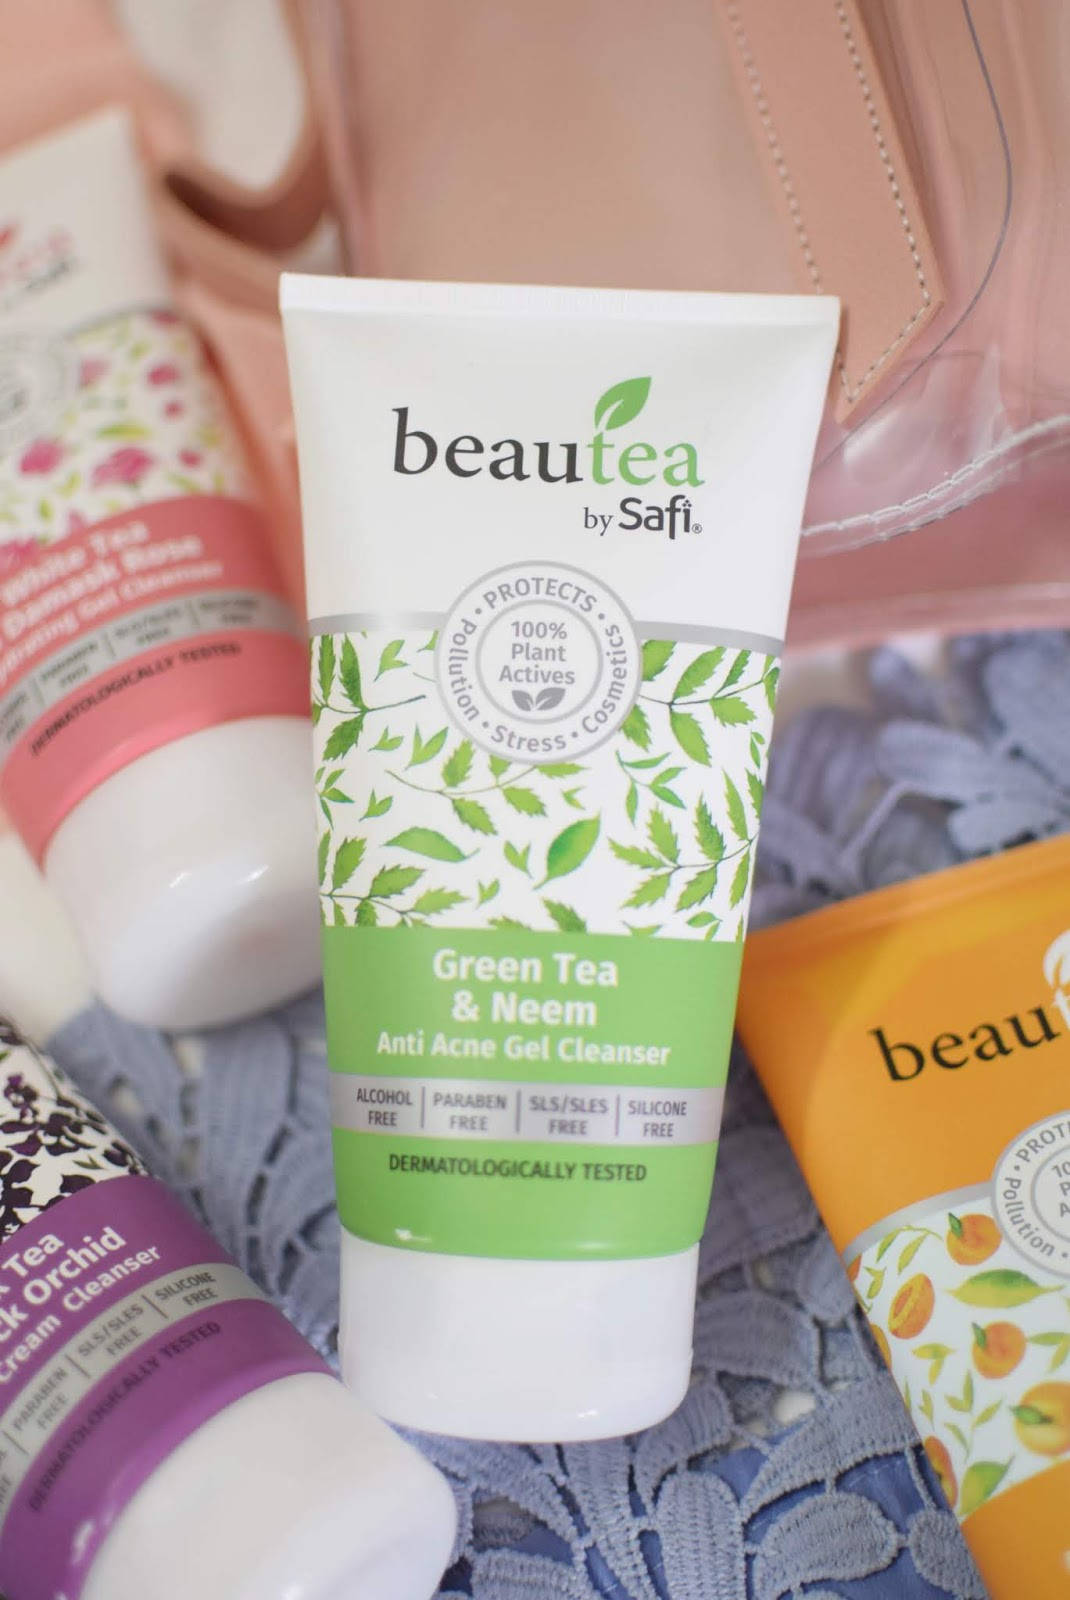 Princess Neverland Beautea By Safi Cleanser With 100 Premium Tea Extracts Review